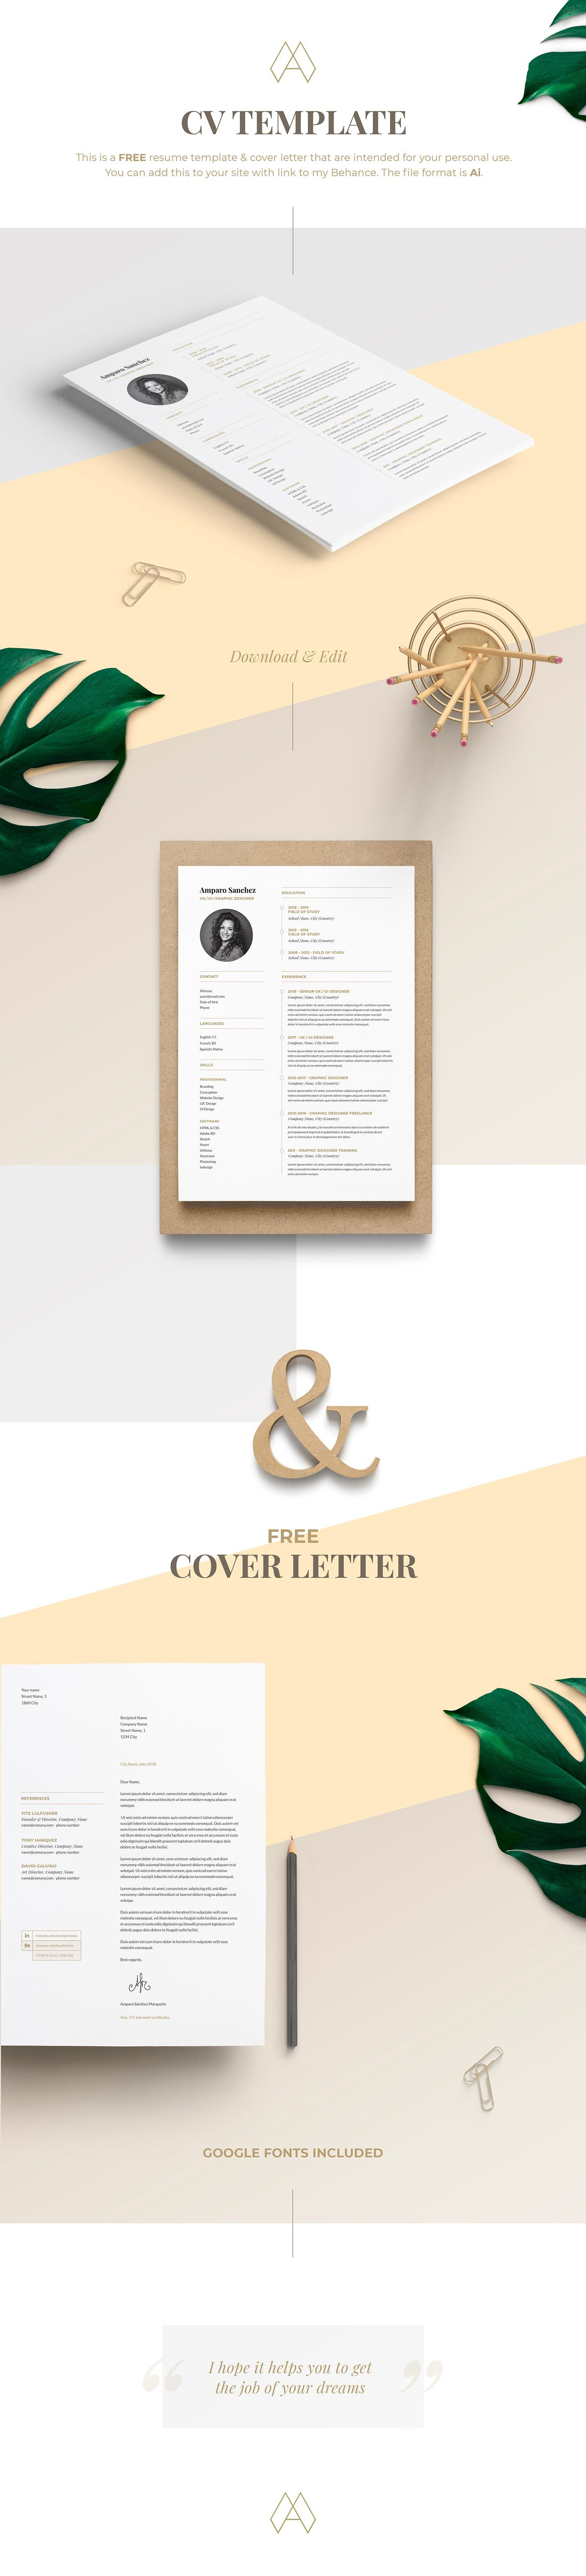 Resume CV Cover Letter Template Free Download!!